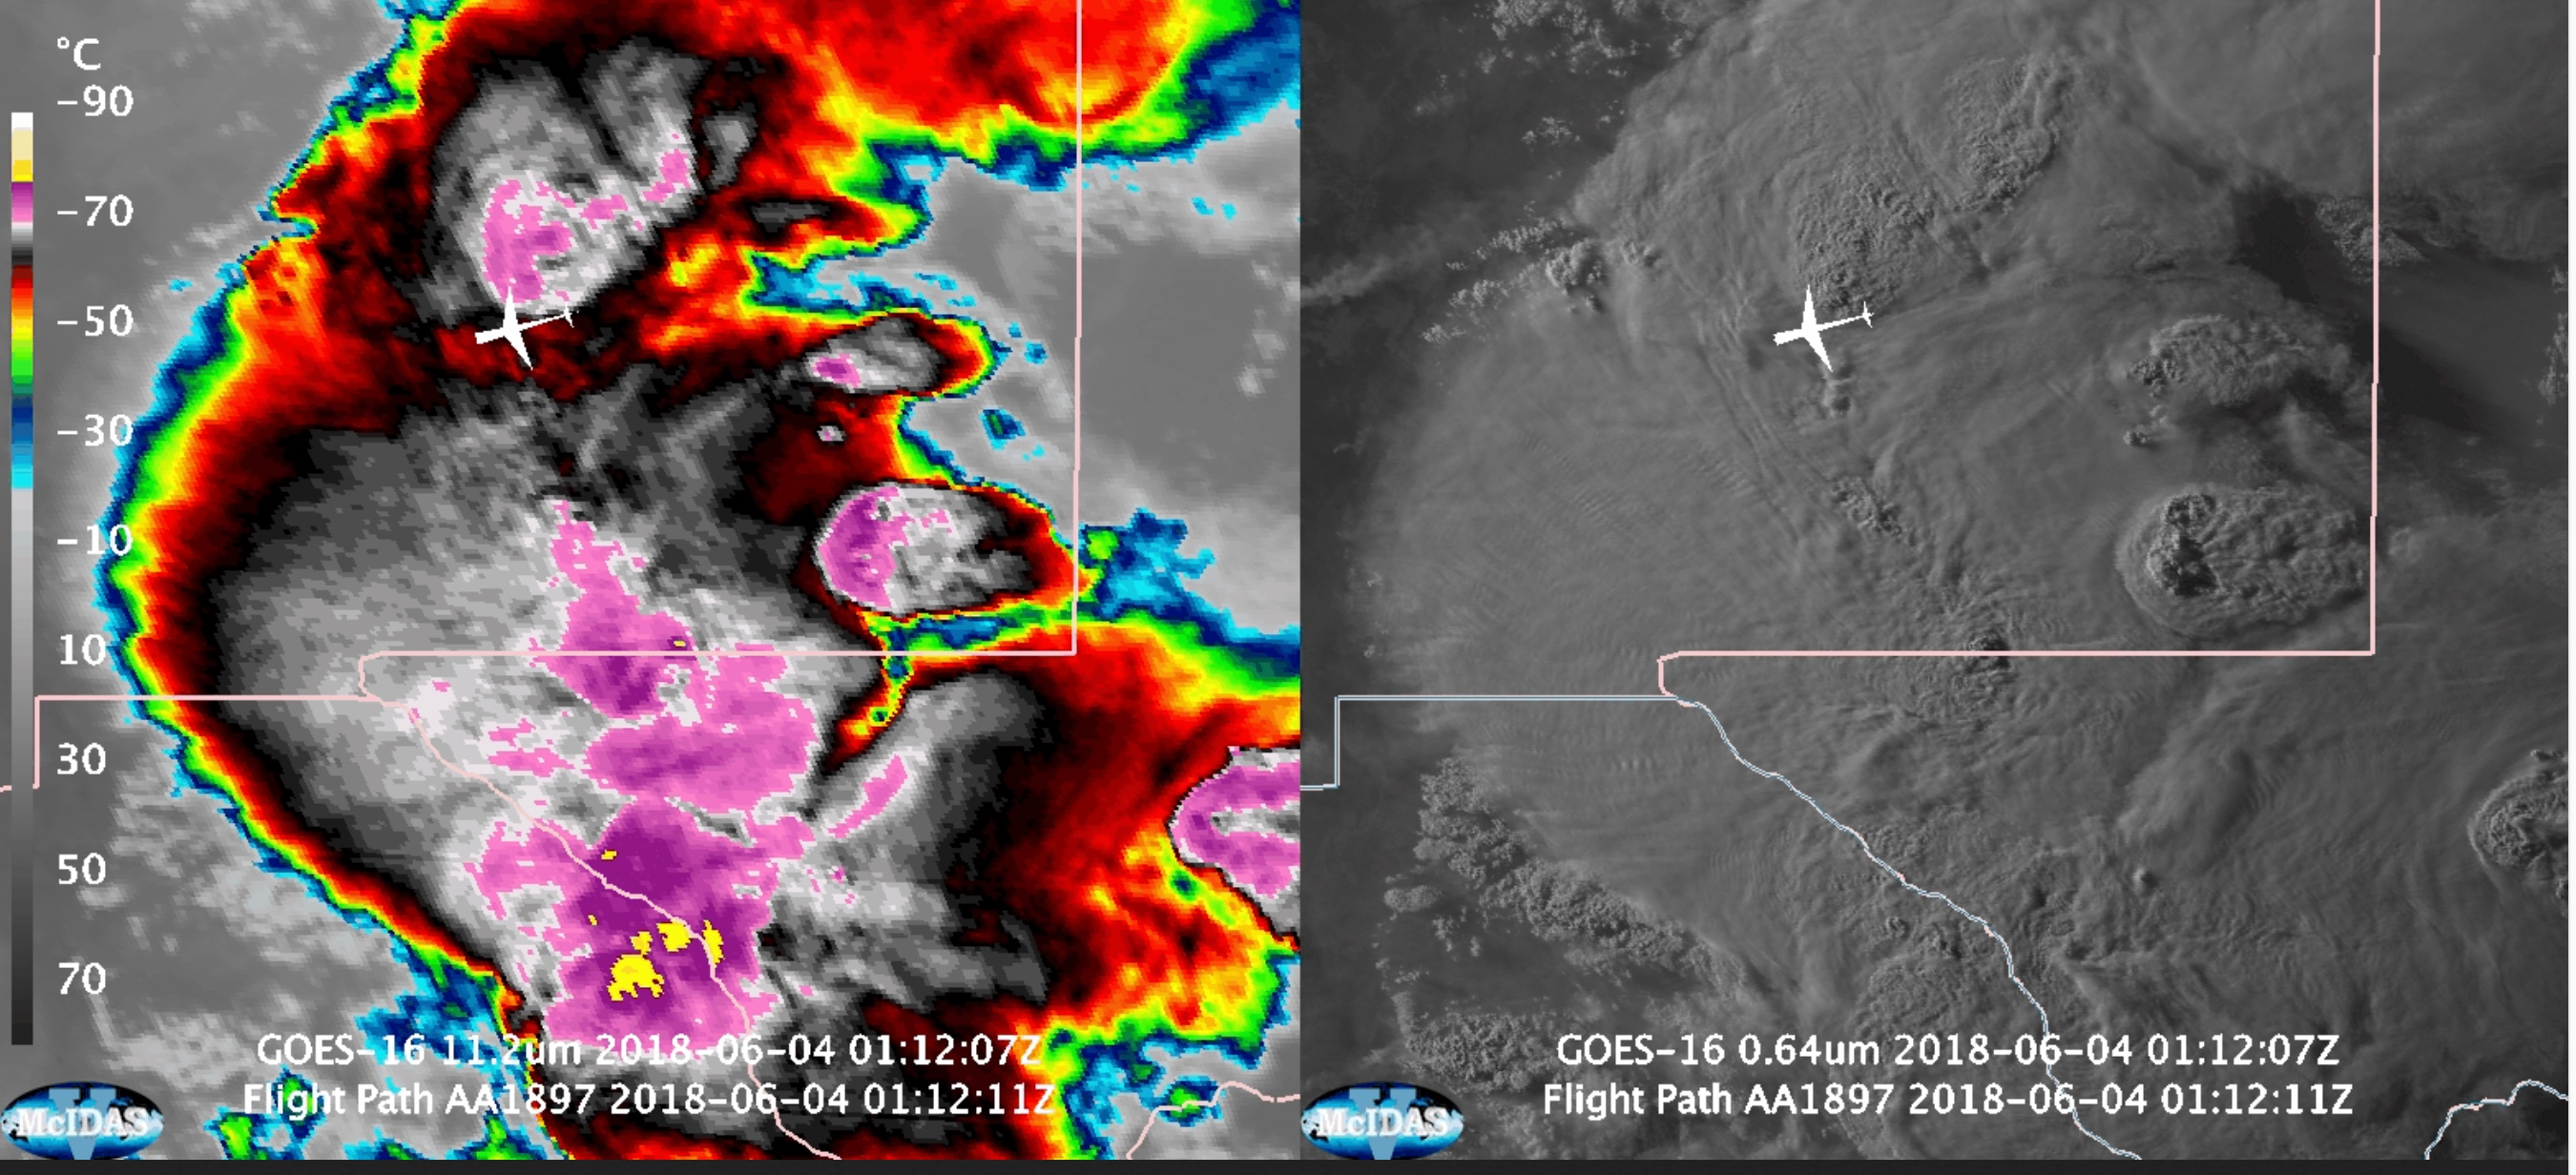 GOES-16 Infrared (11.2 µm, left) and Visible (0.64 µm, right) images, with plots of the aircraft location [click to play animation]